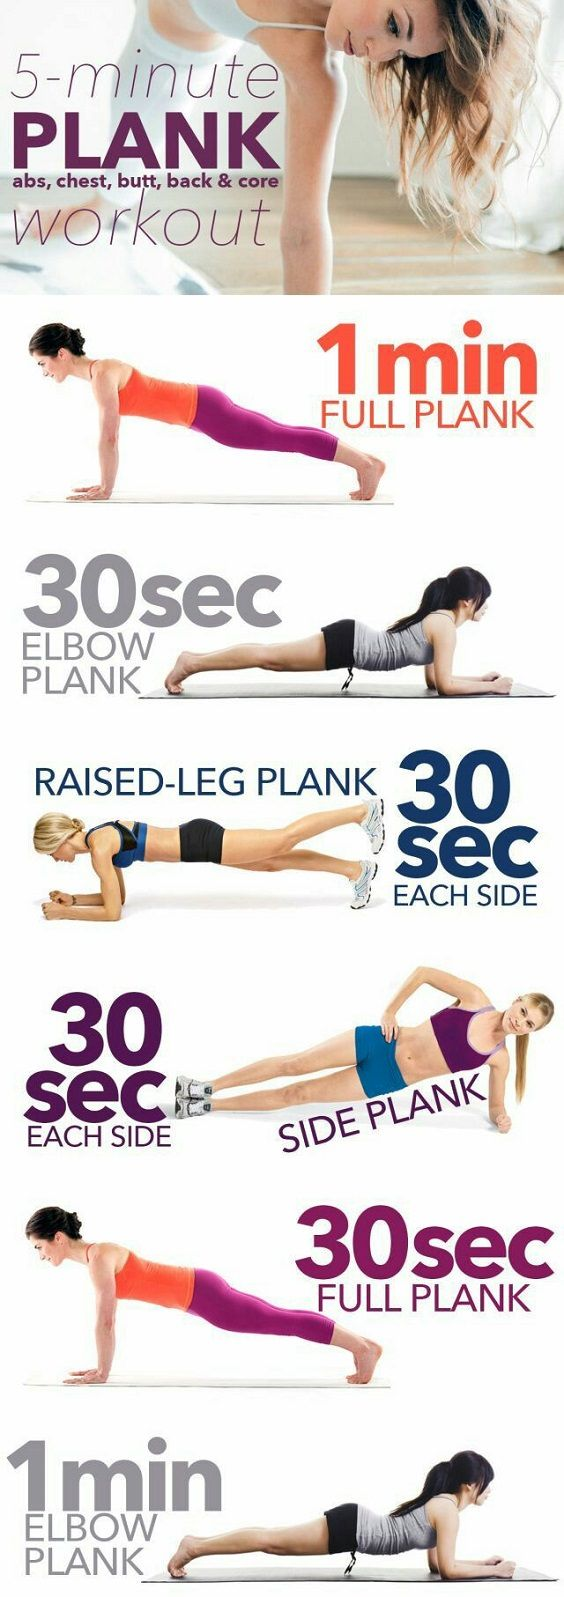 If you don't like to exercise regularly and feel like skipping your daily routine, take a look at these workouts!